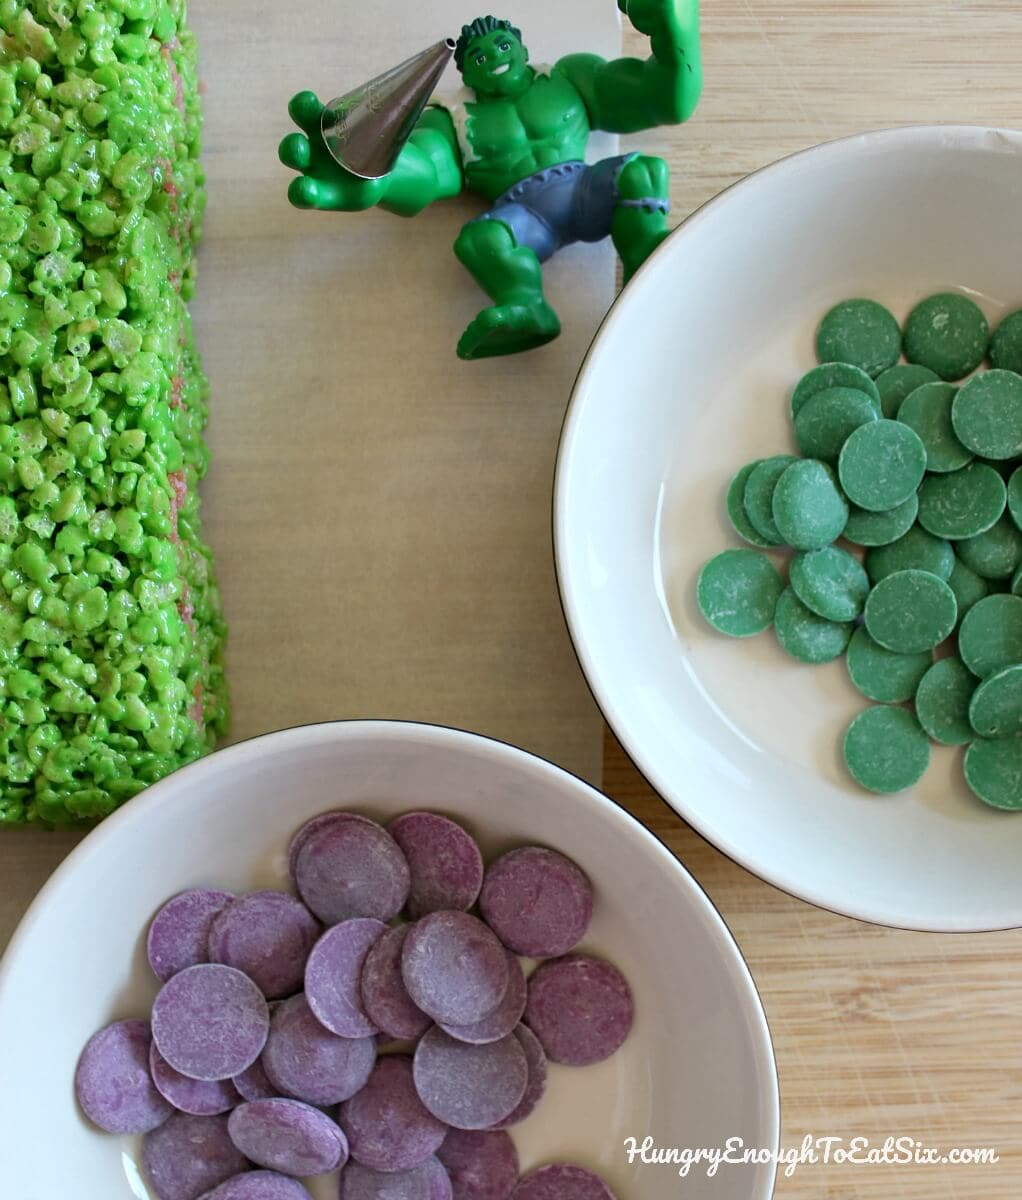 Bowls of purple and green candy melts next to a Hulk toy